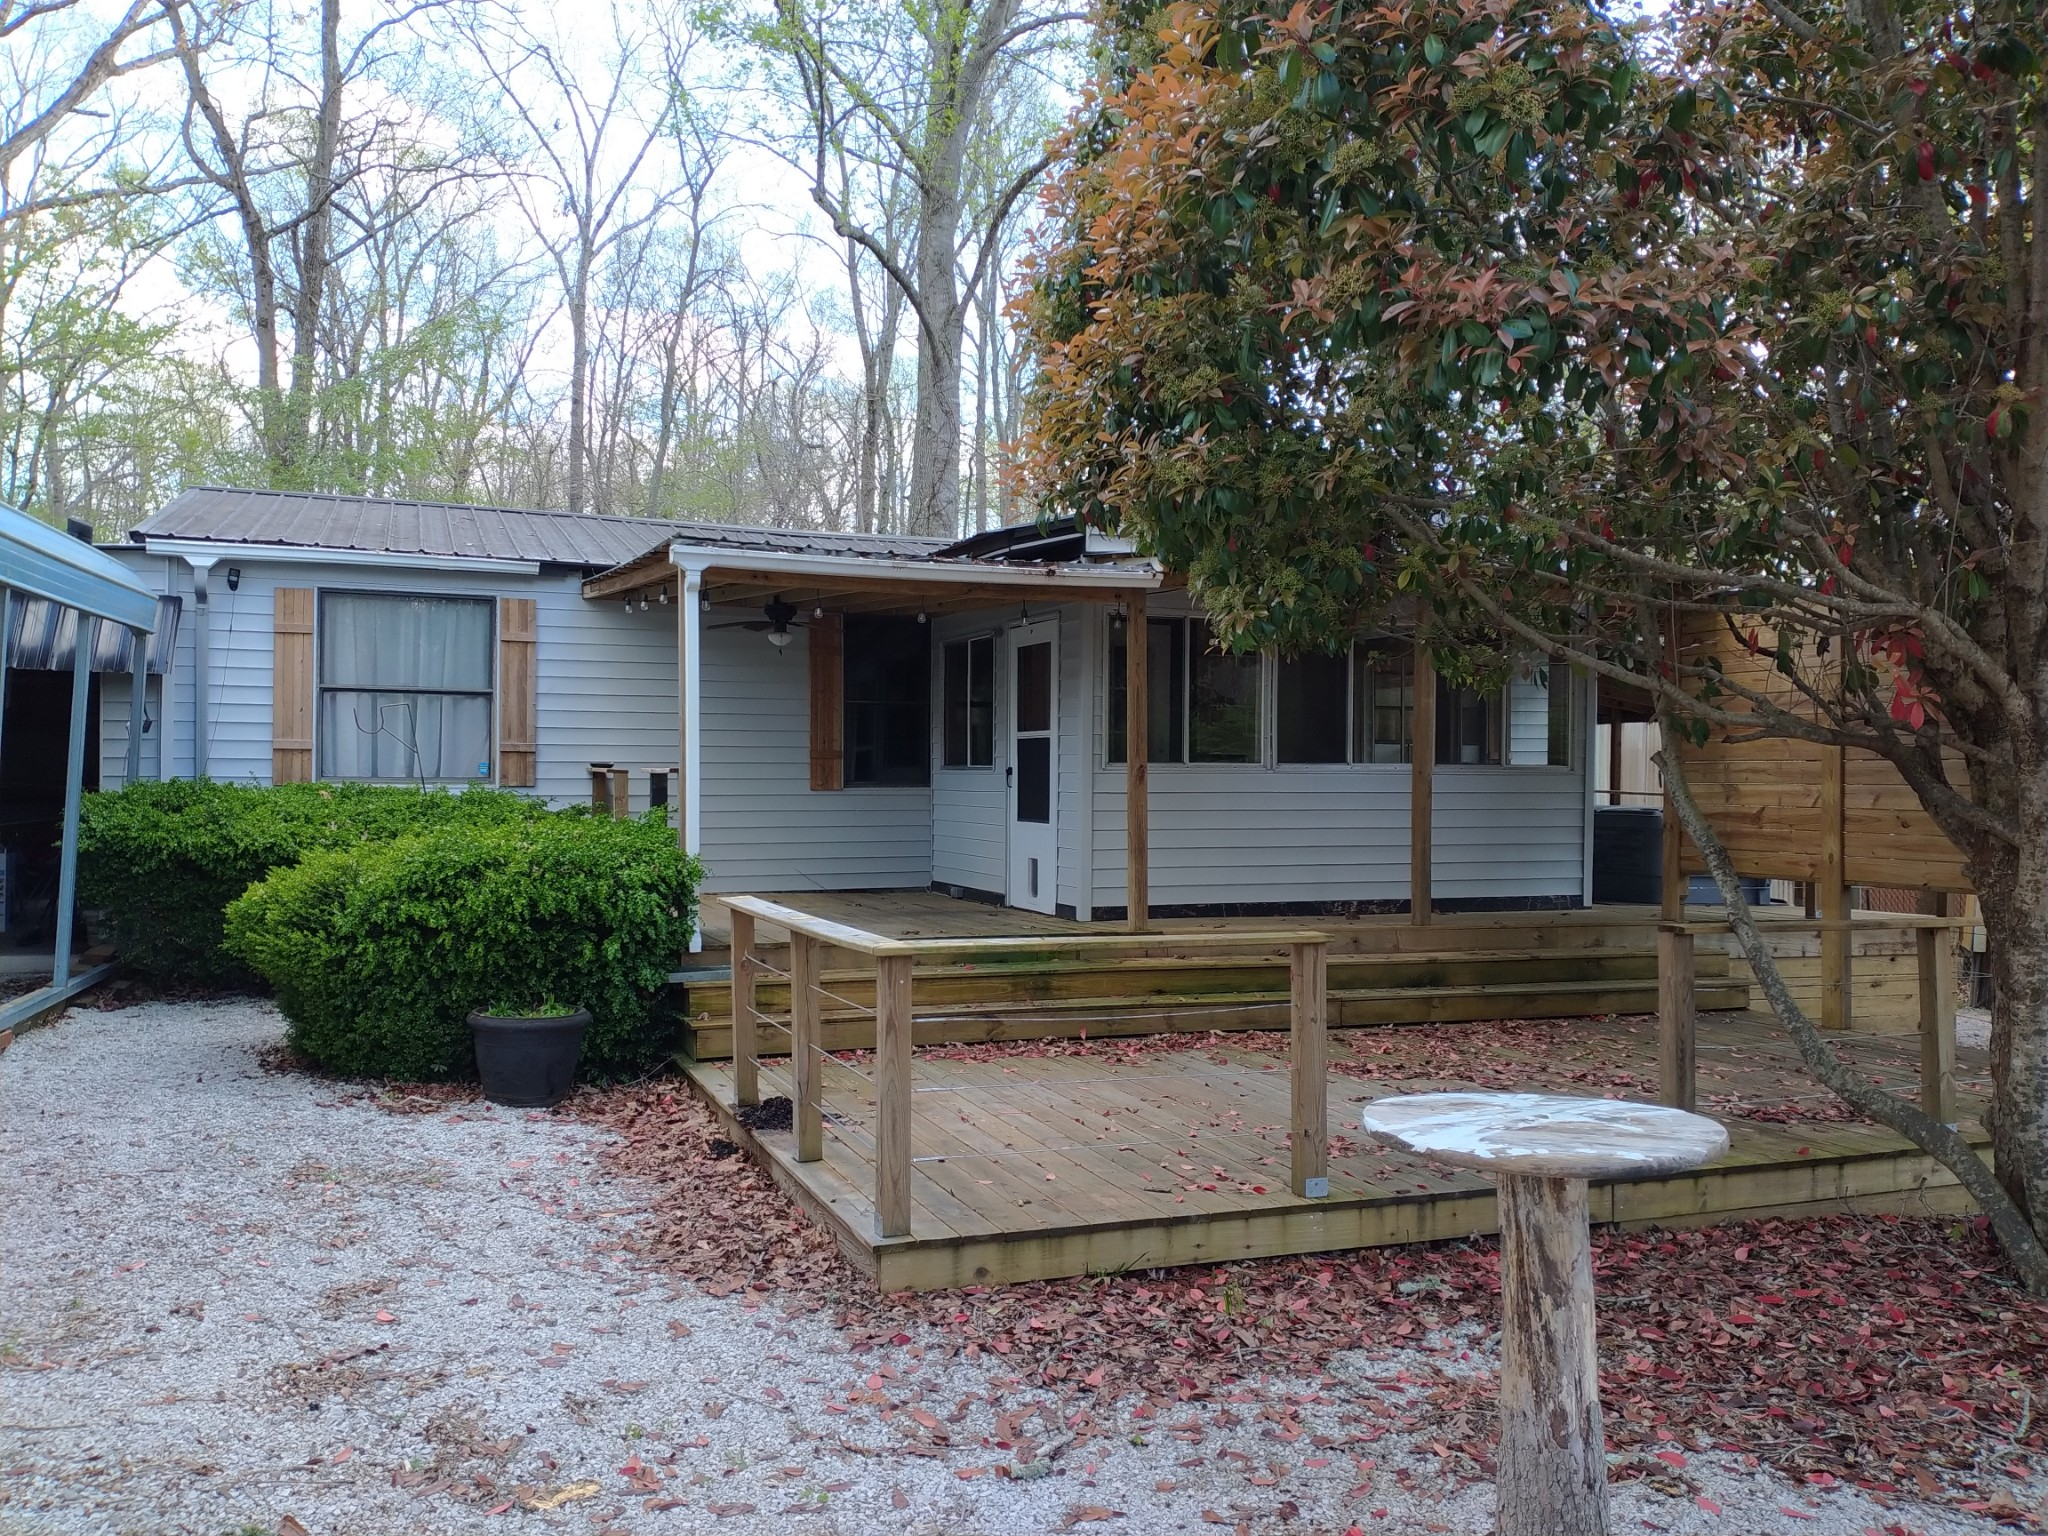 841 Lakewood Dr Property Photo - Beechgrove, TN real estate listing